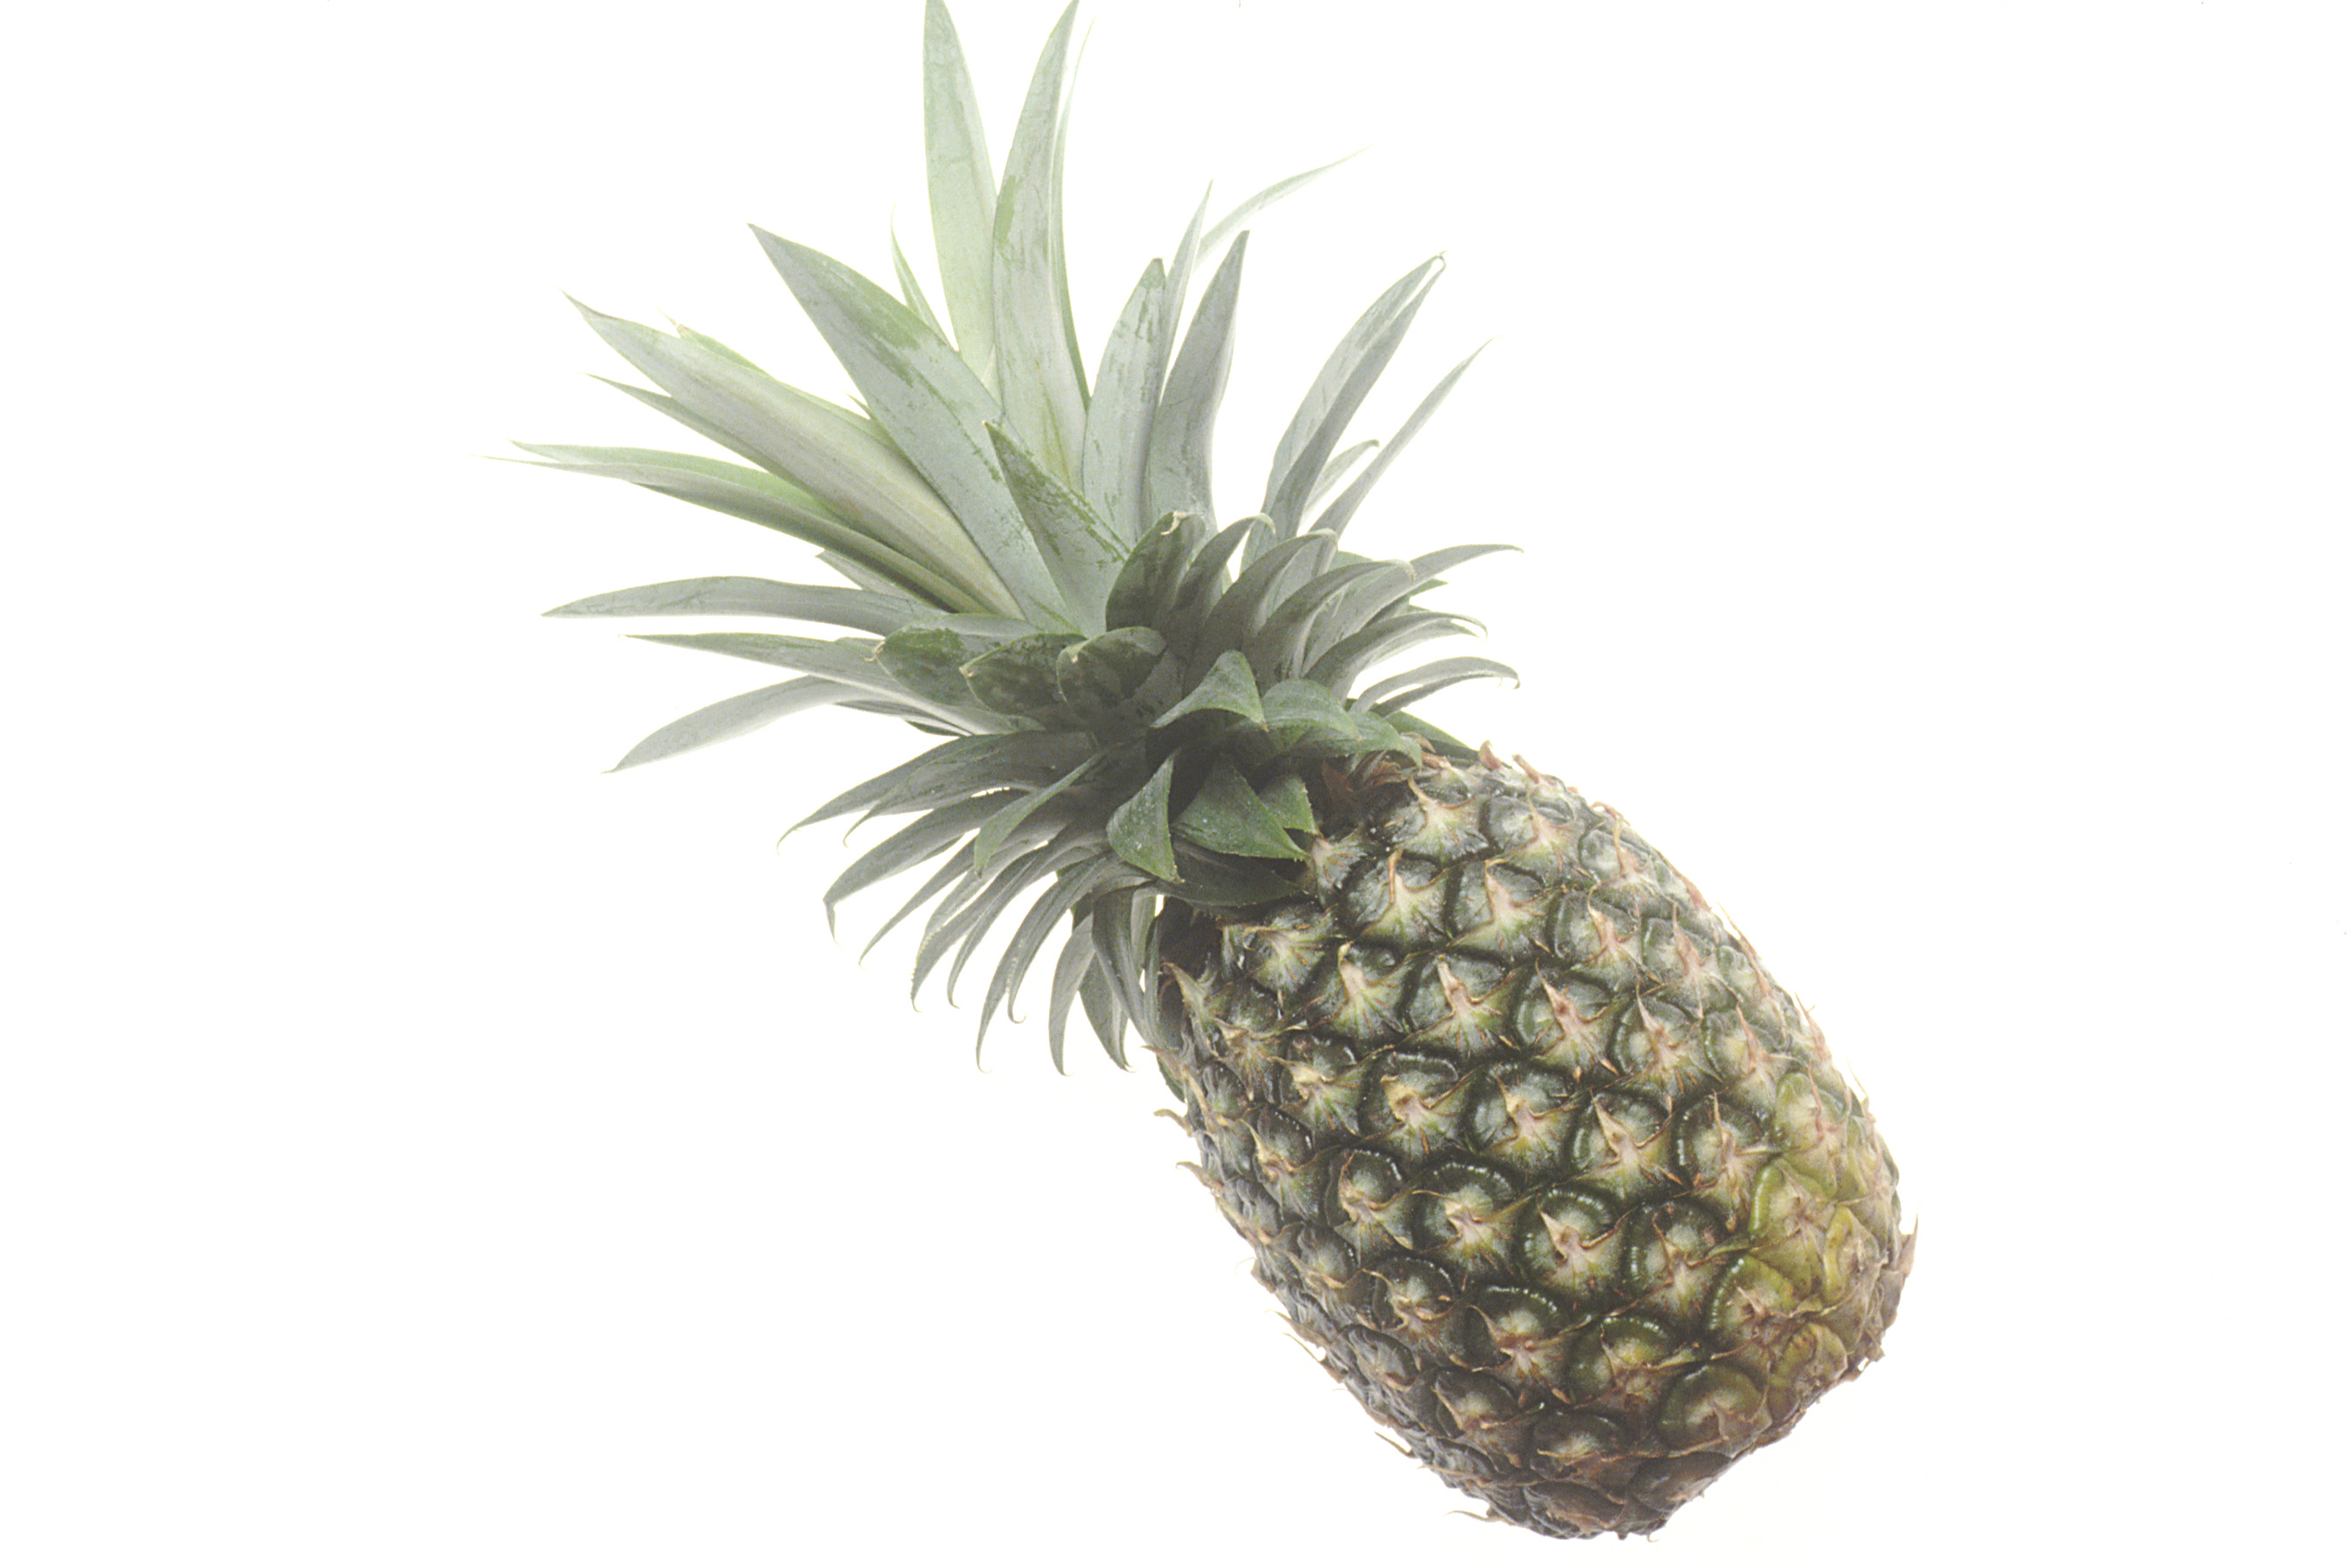 How long does it take a pineapple to grow?